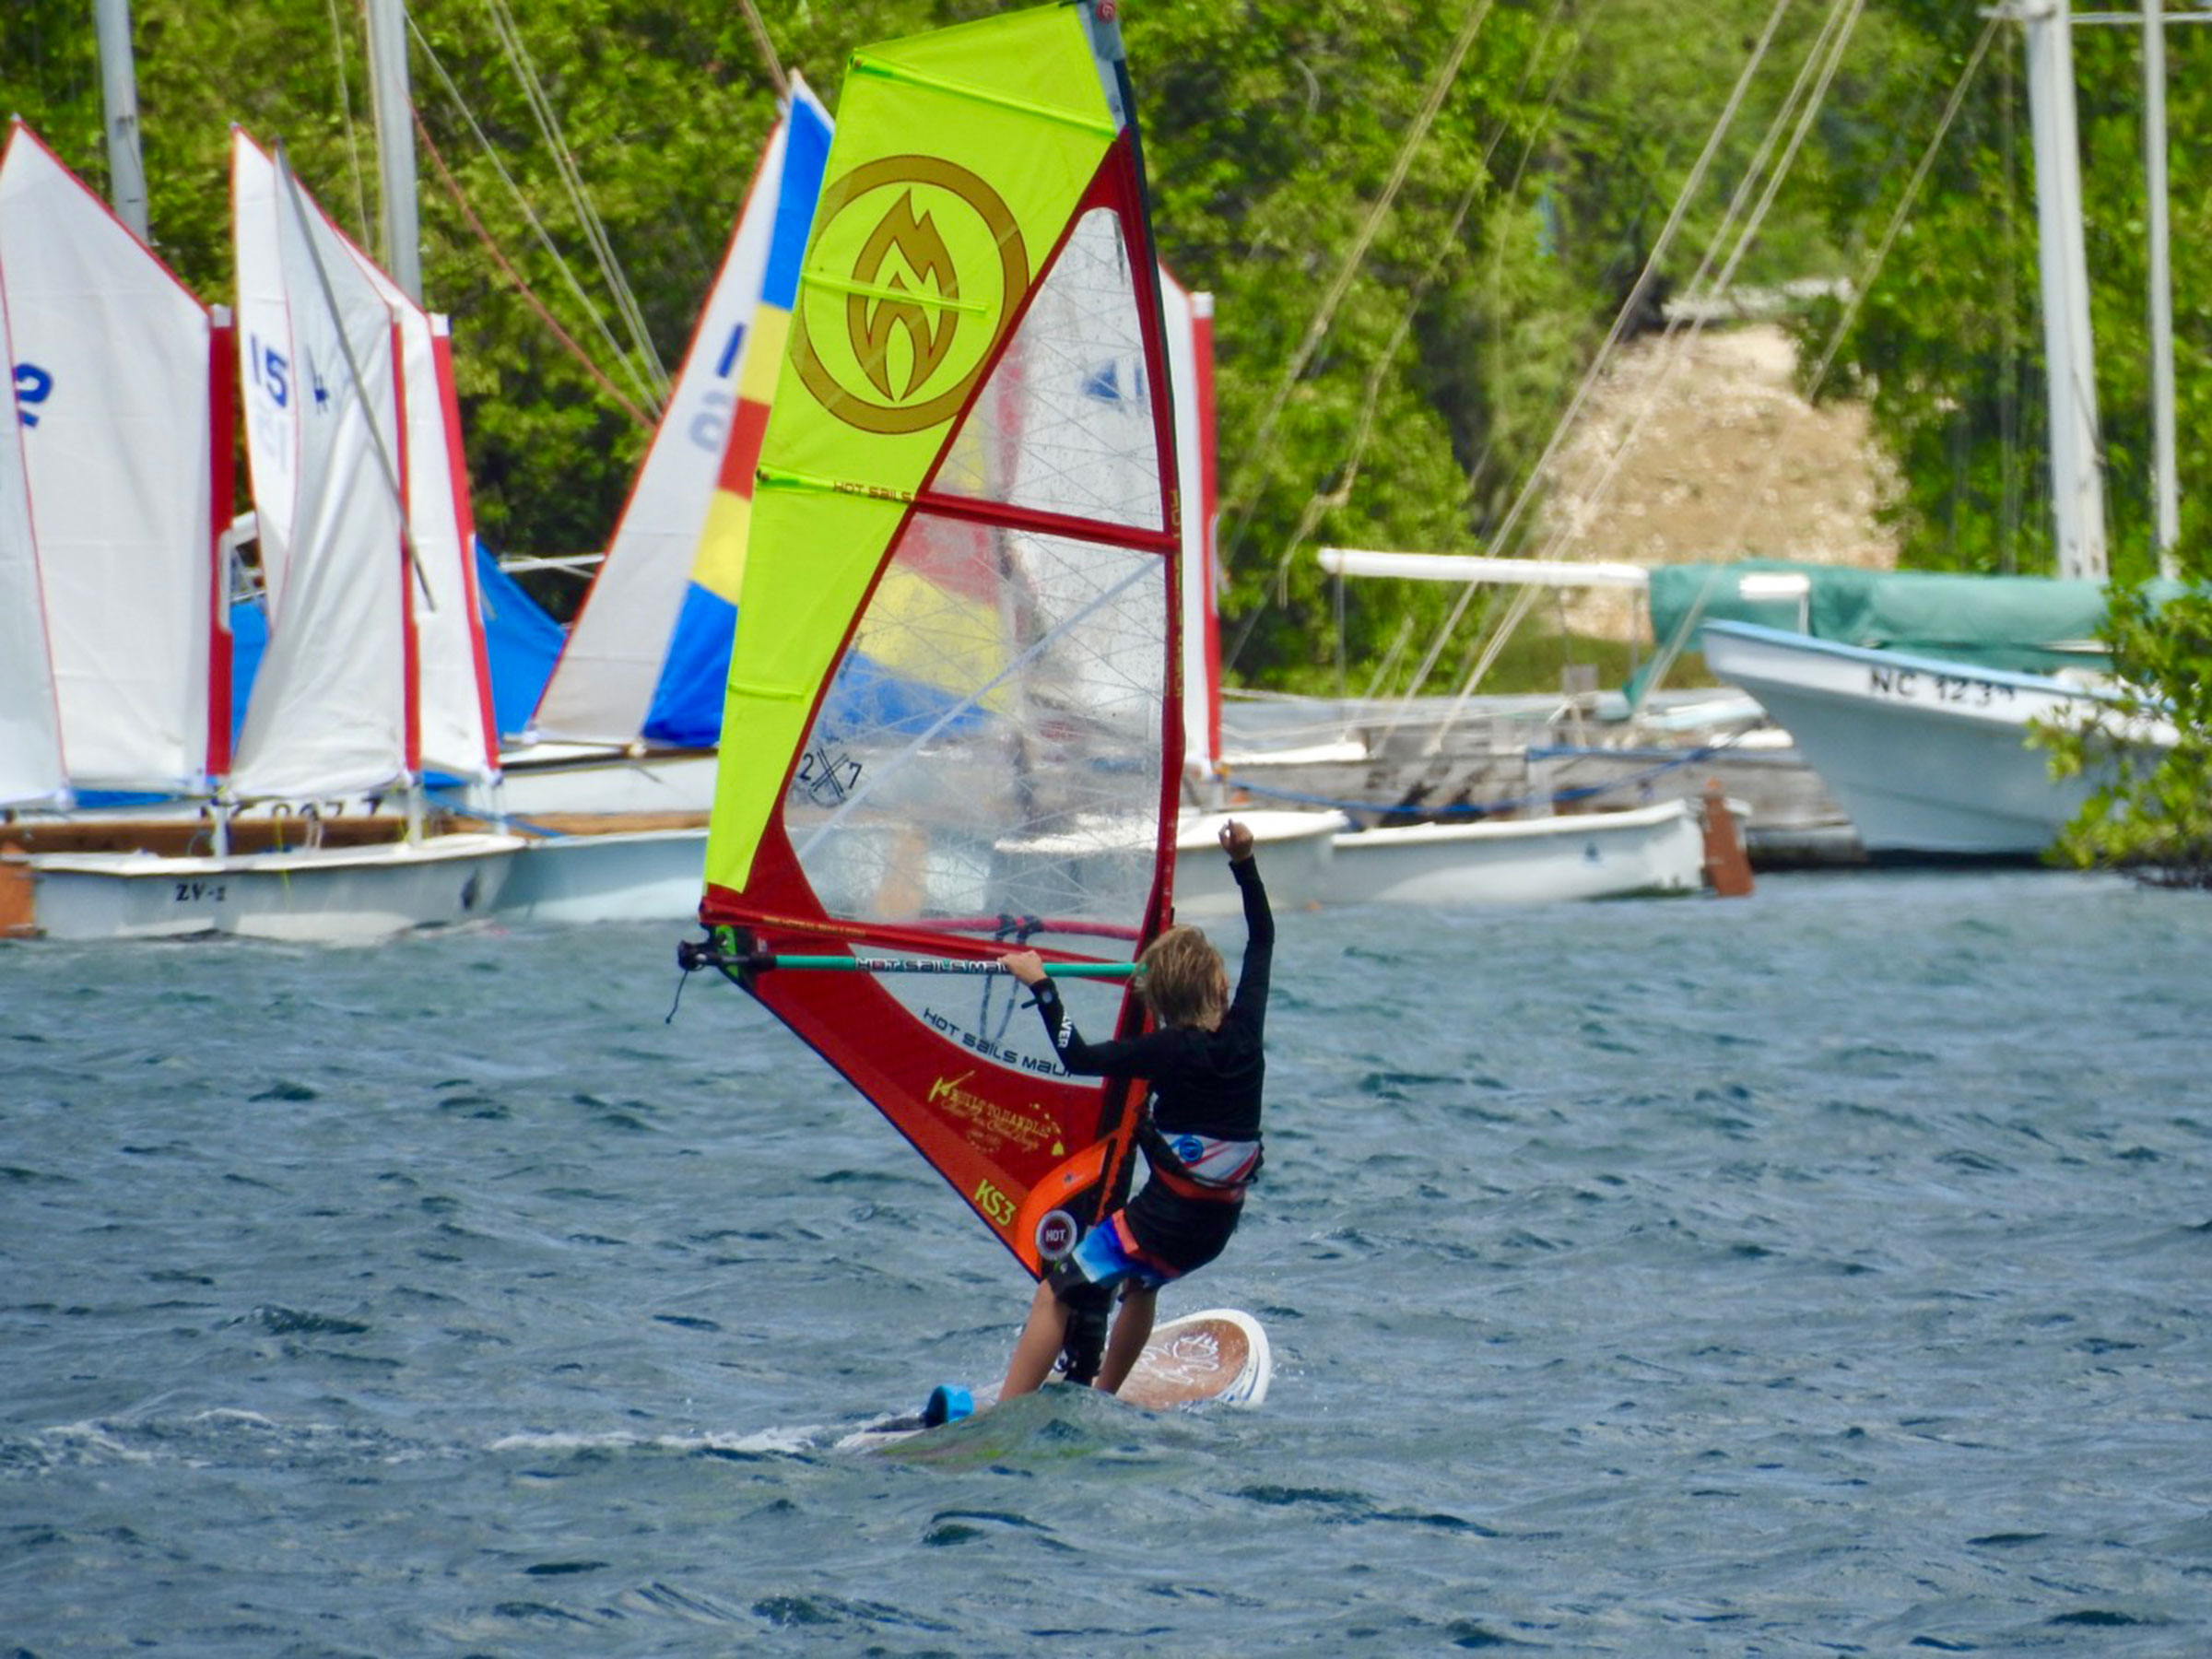 Hot Sails Maui MicroKS3